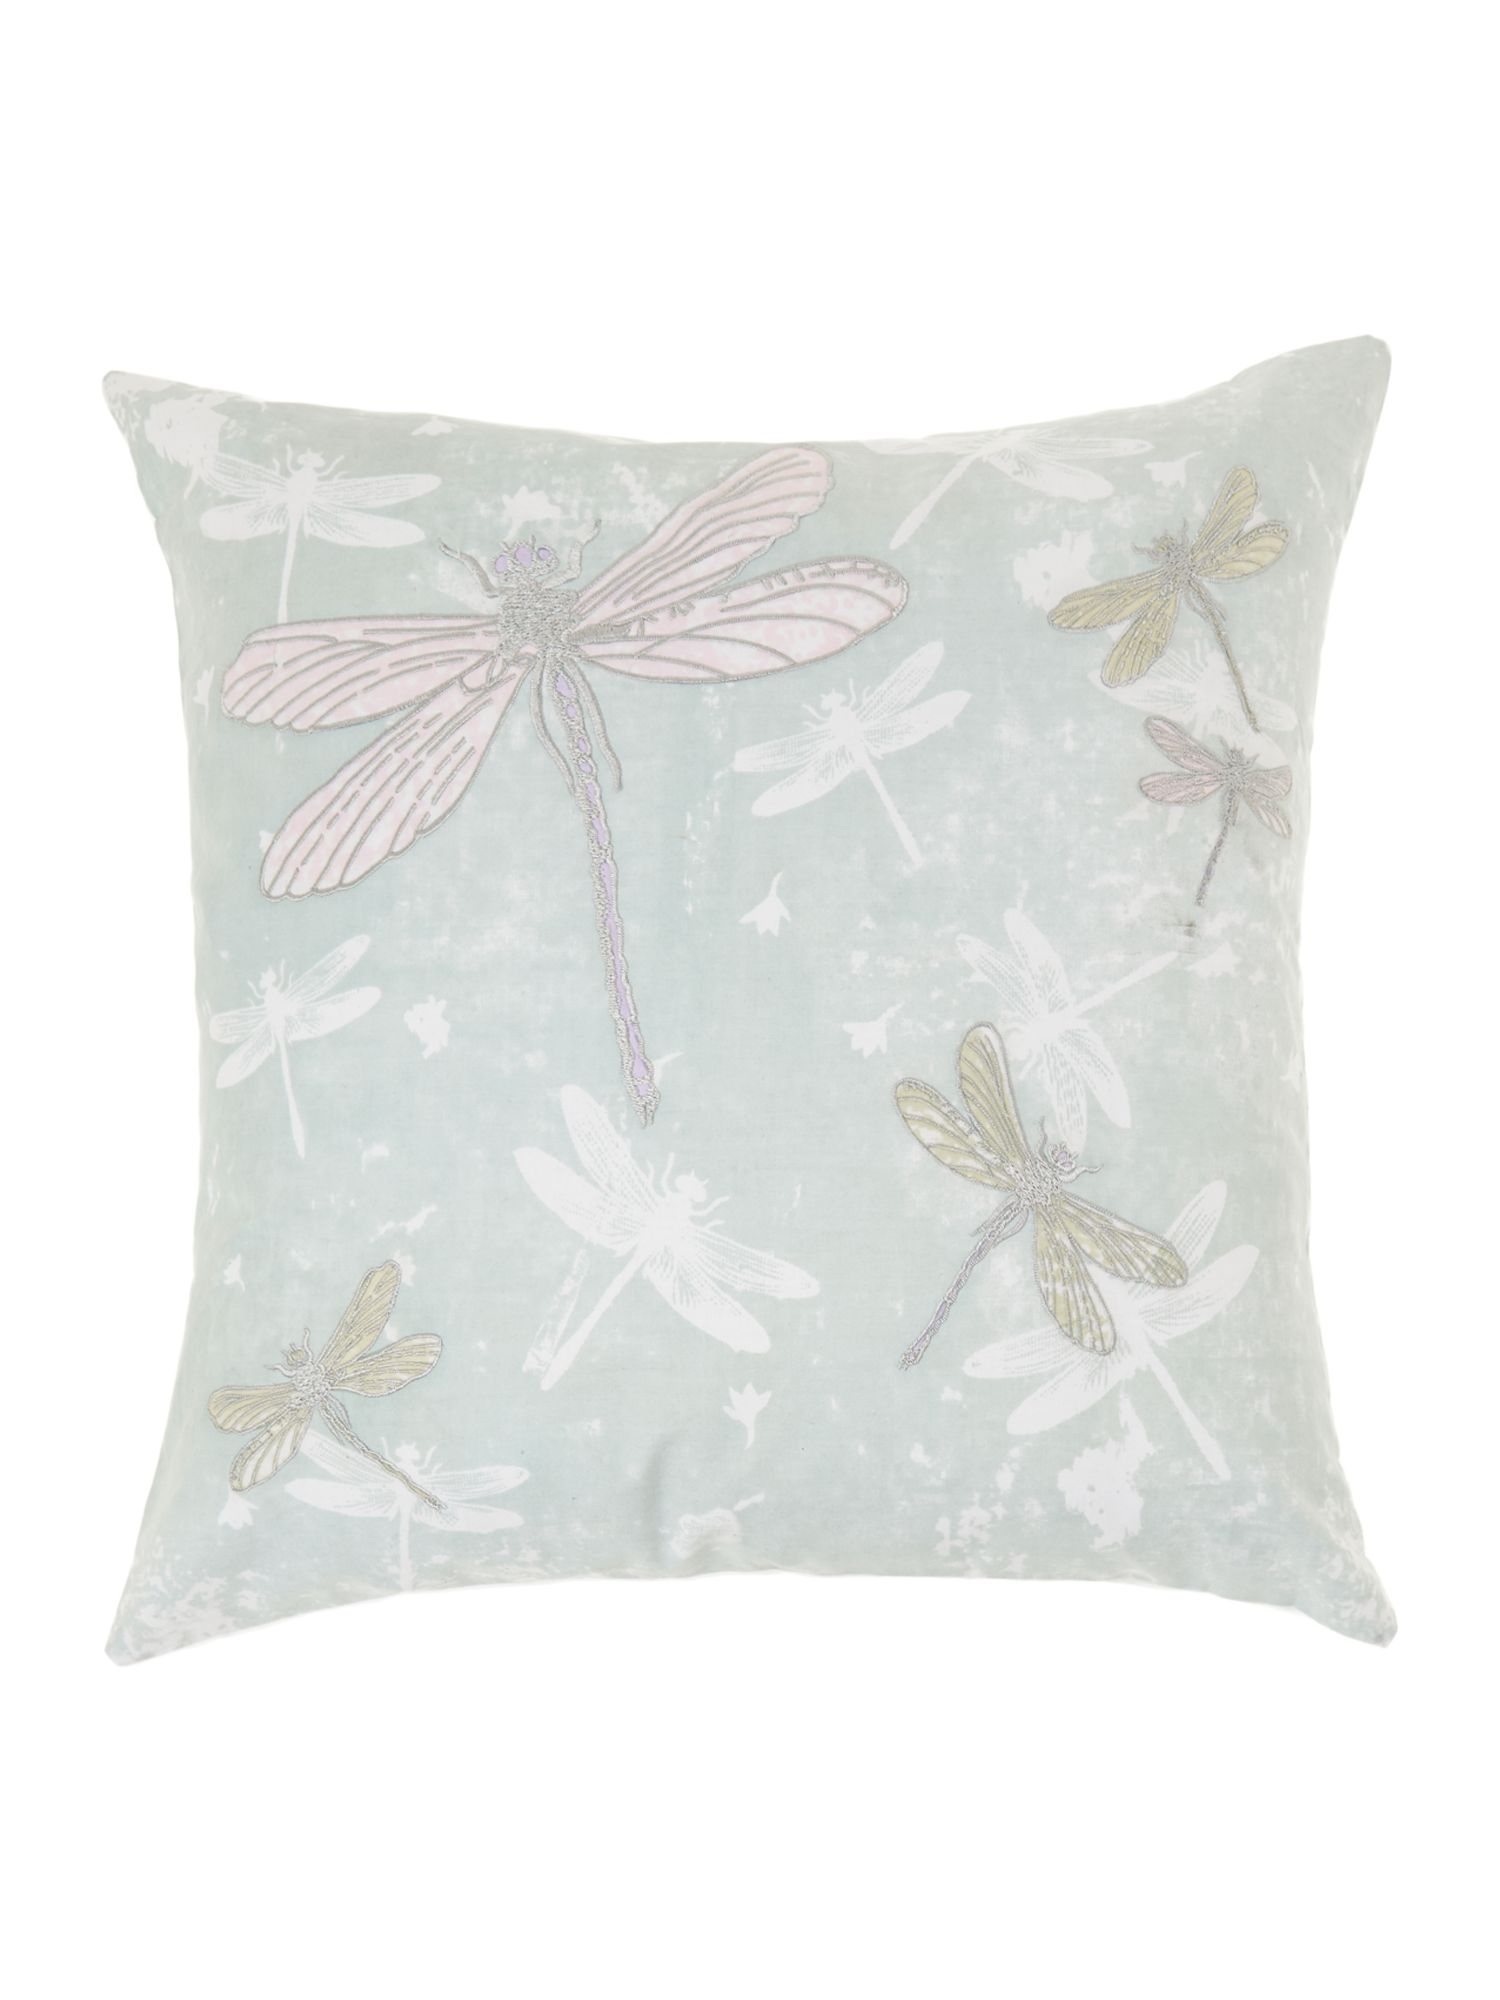 Dragonflies silhouette cushion